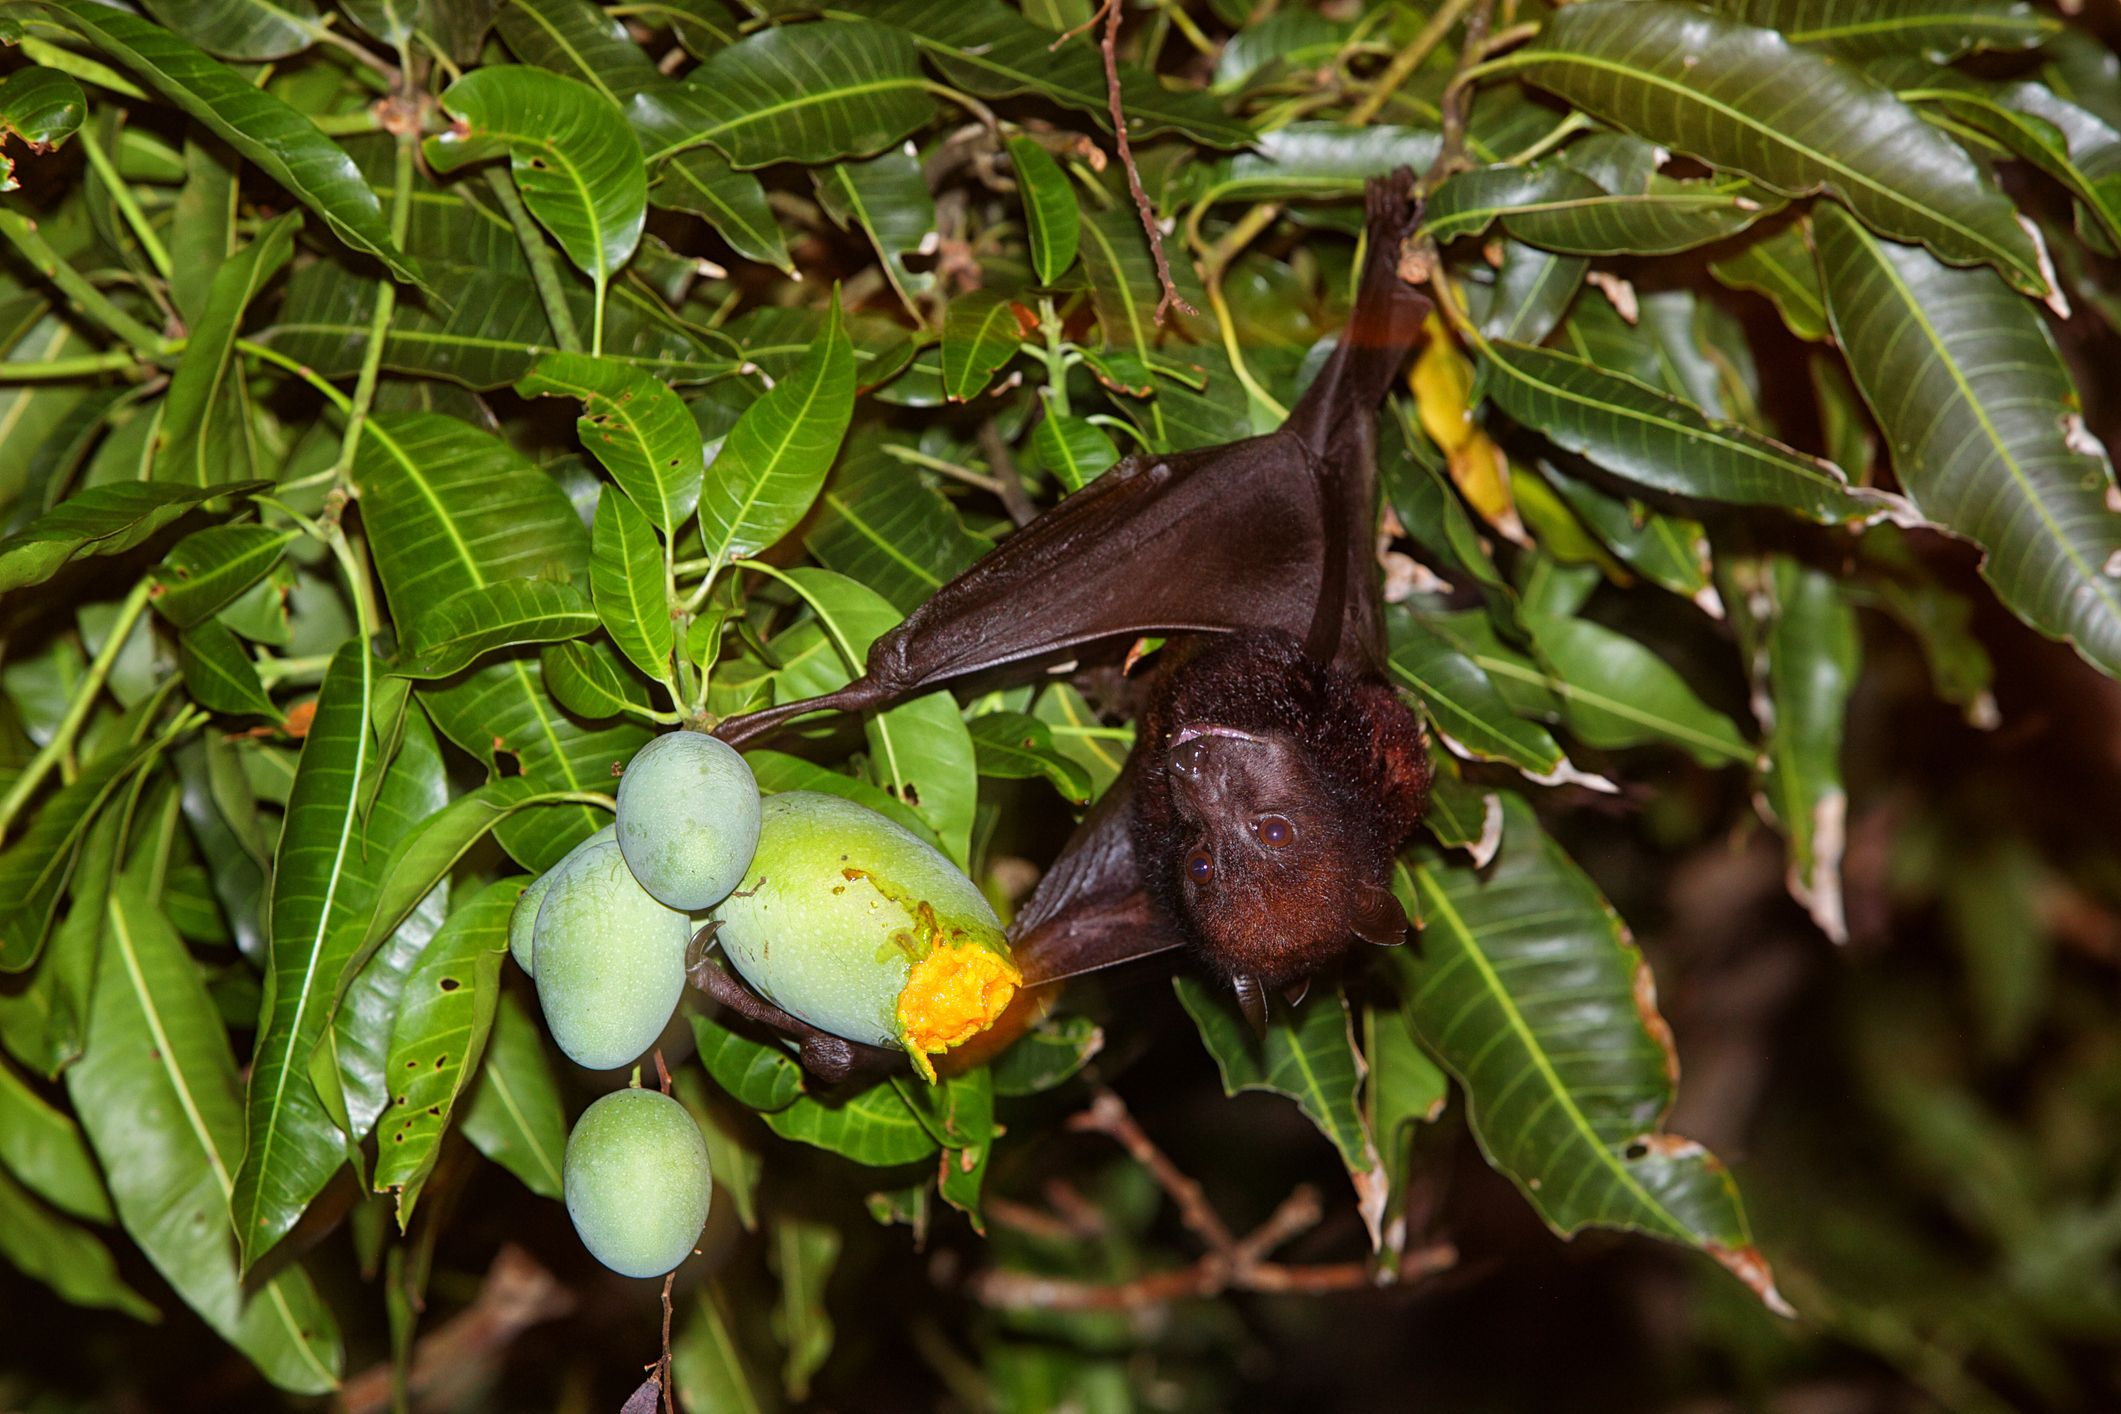 Over 300 species of fruit rely on bats for pollination.